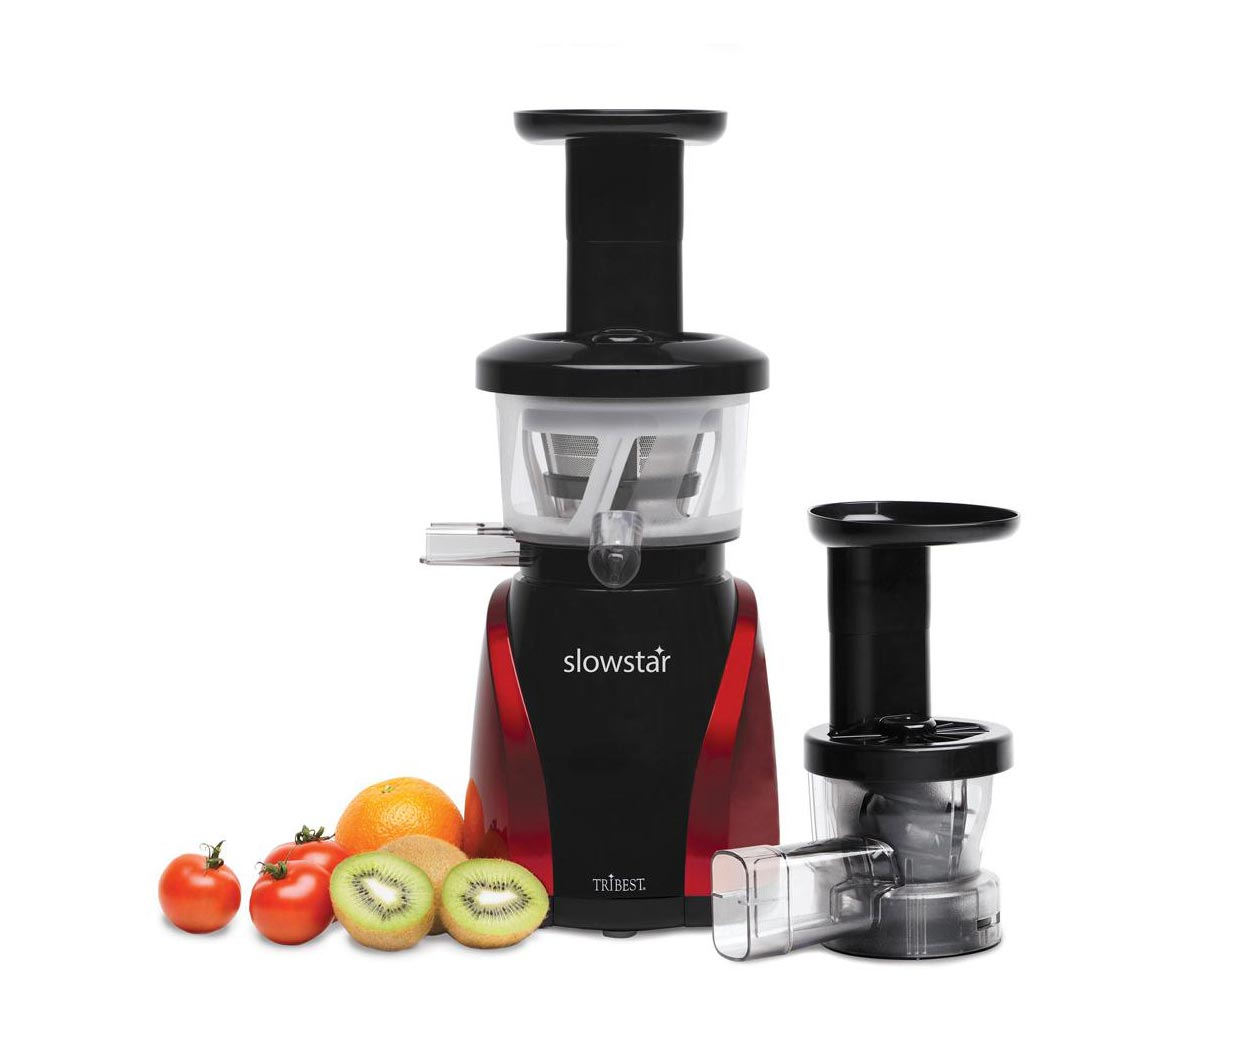 Tribest Slowstar Vertical Slow Juicer Reviews : Tribest Slowstar Juicer Review. Is this Tribest juicer the best juicer to buy?